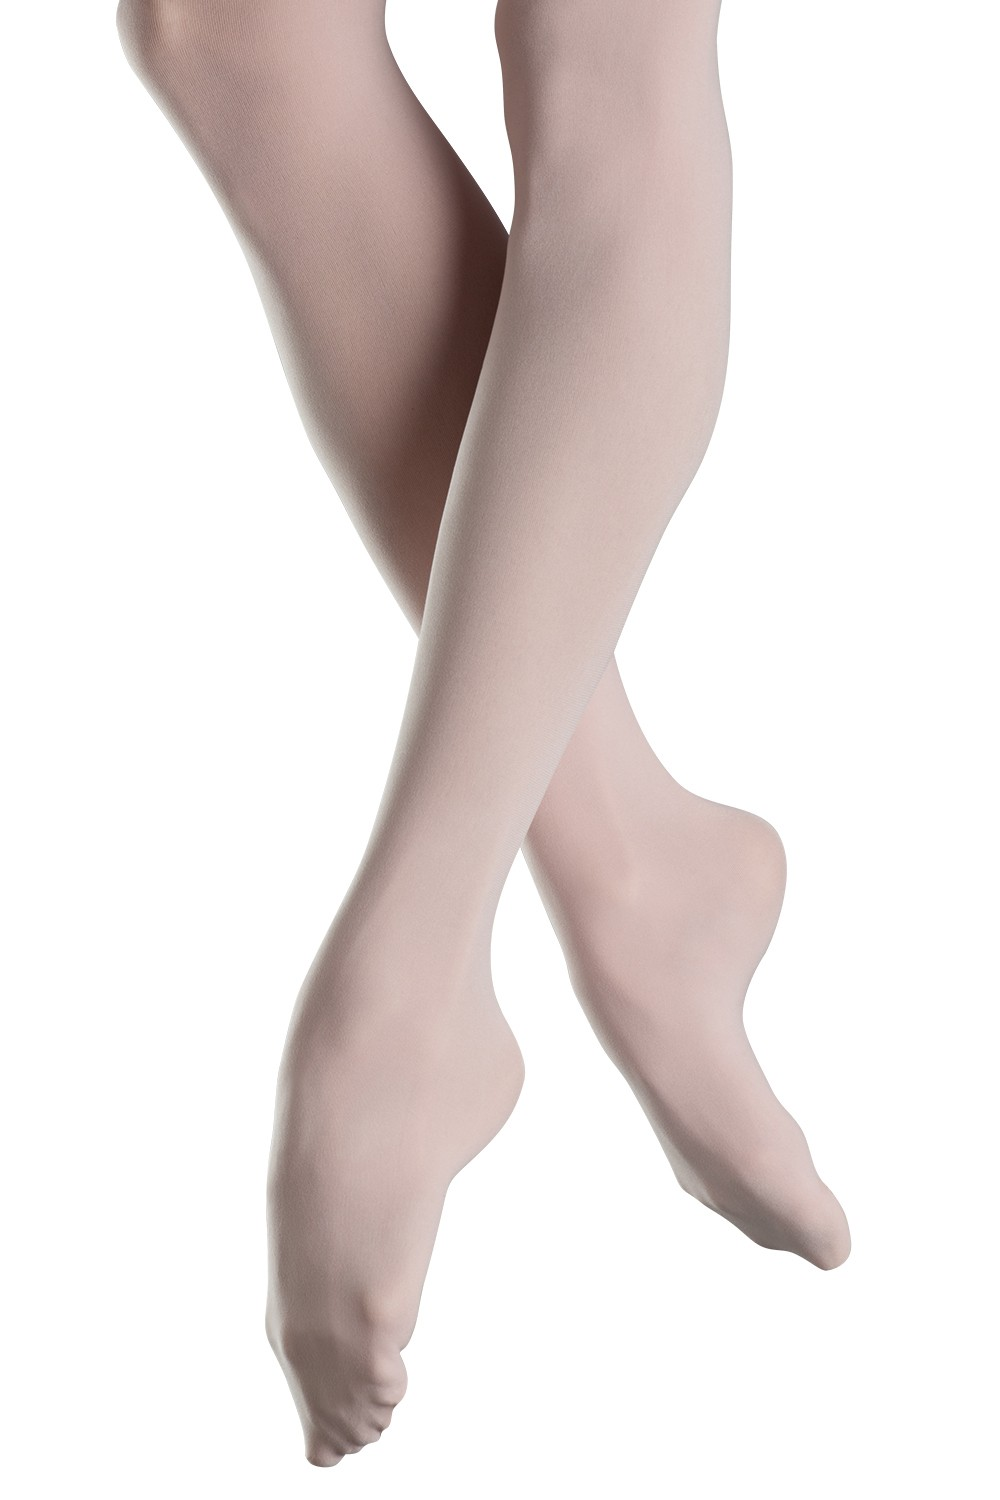 Collant Endura Hipstar Donna Women's Dance Tights